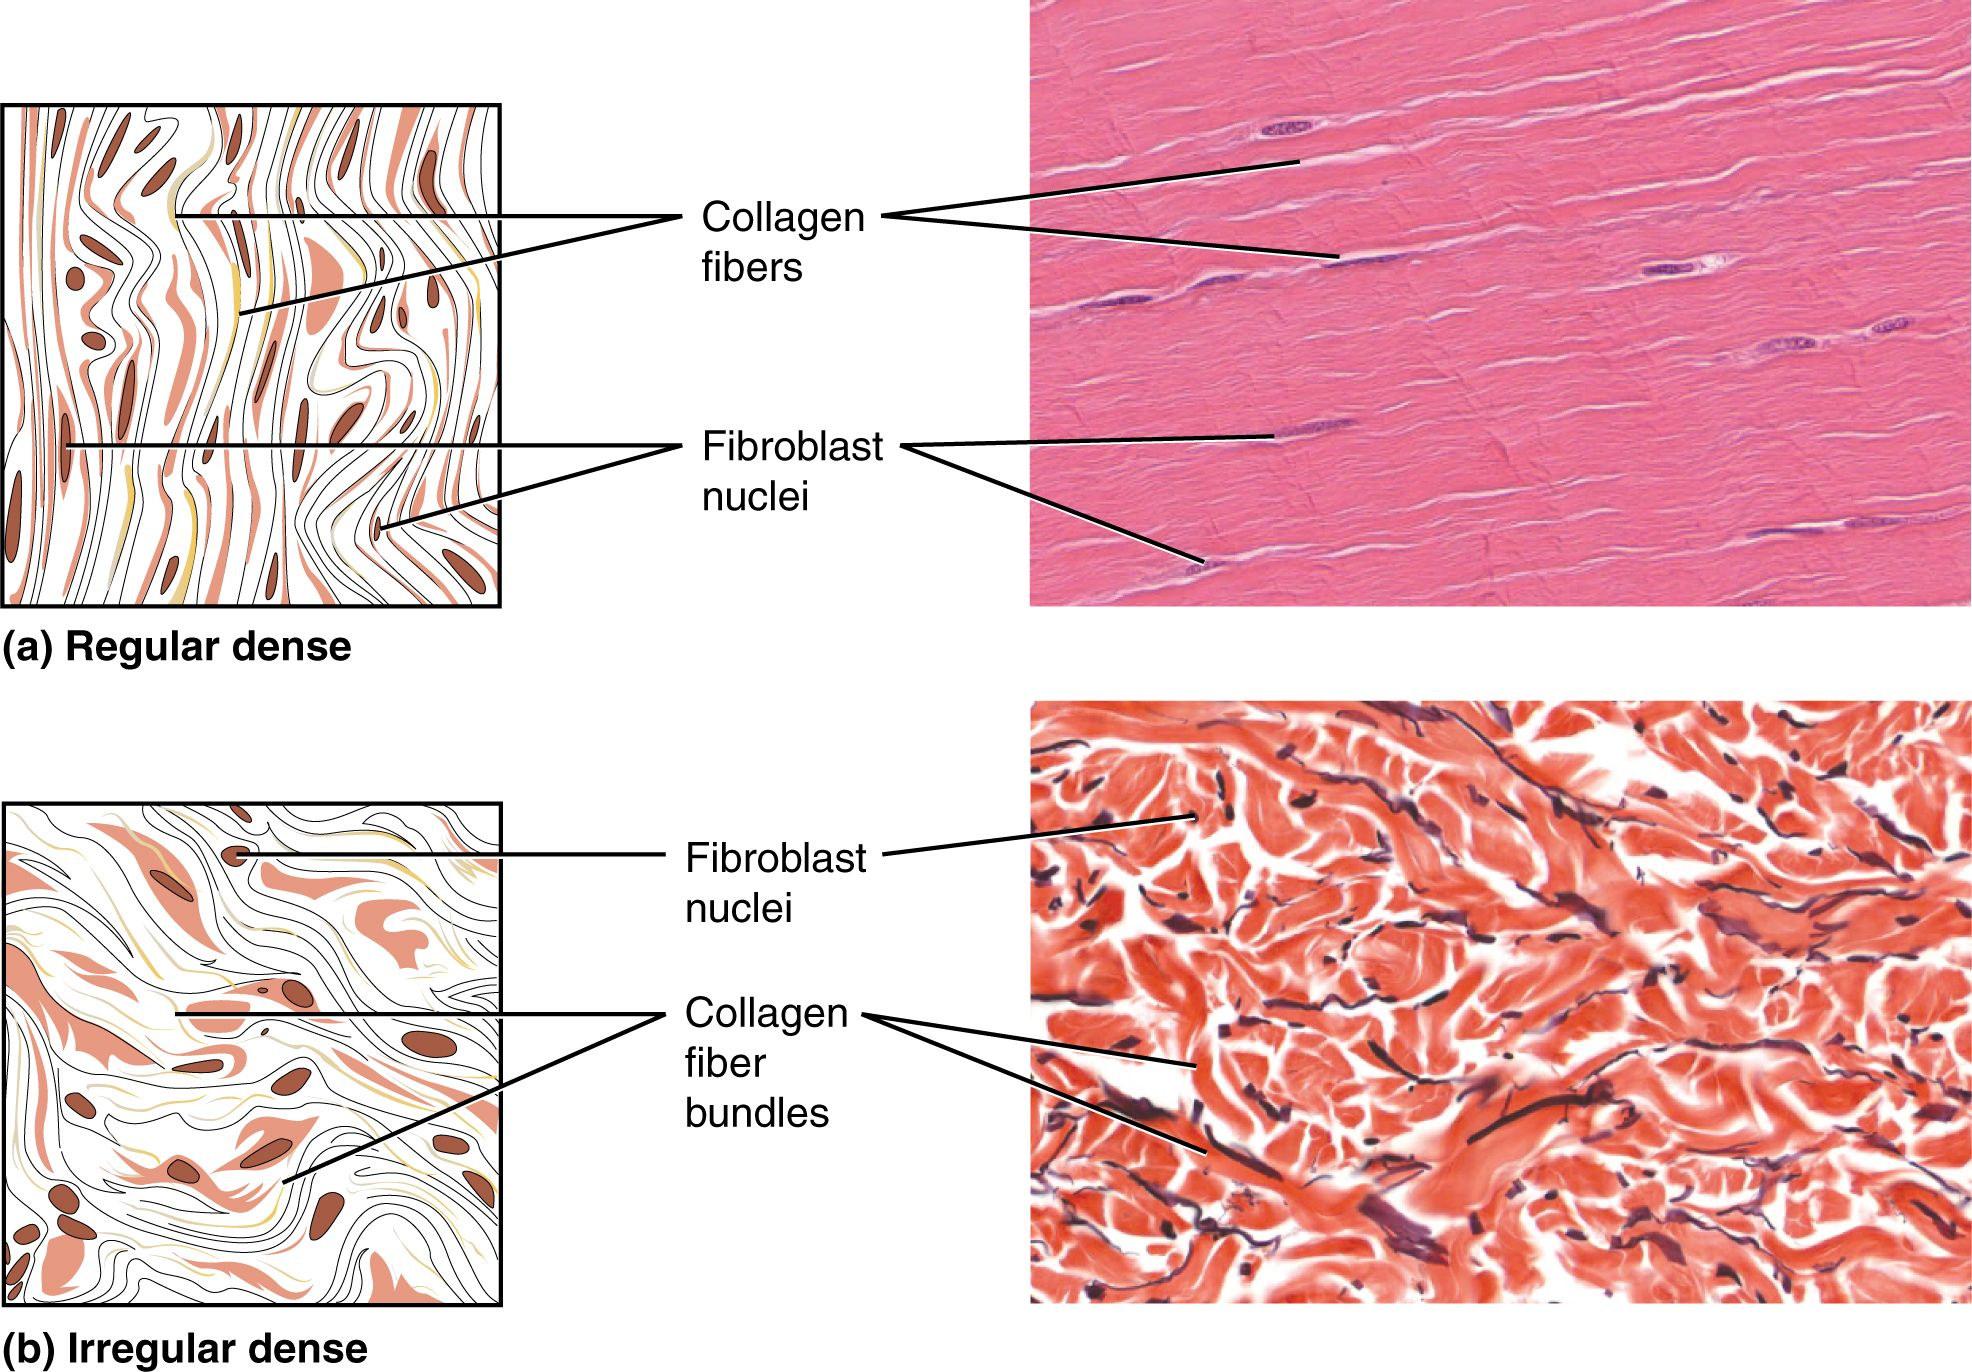 medium resolution of part a shows a diagram of regular dense connective tissue alongside a micrograph the tissue